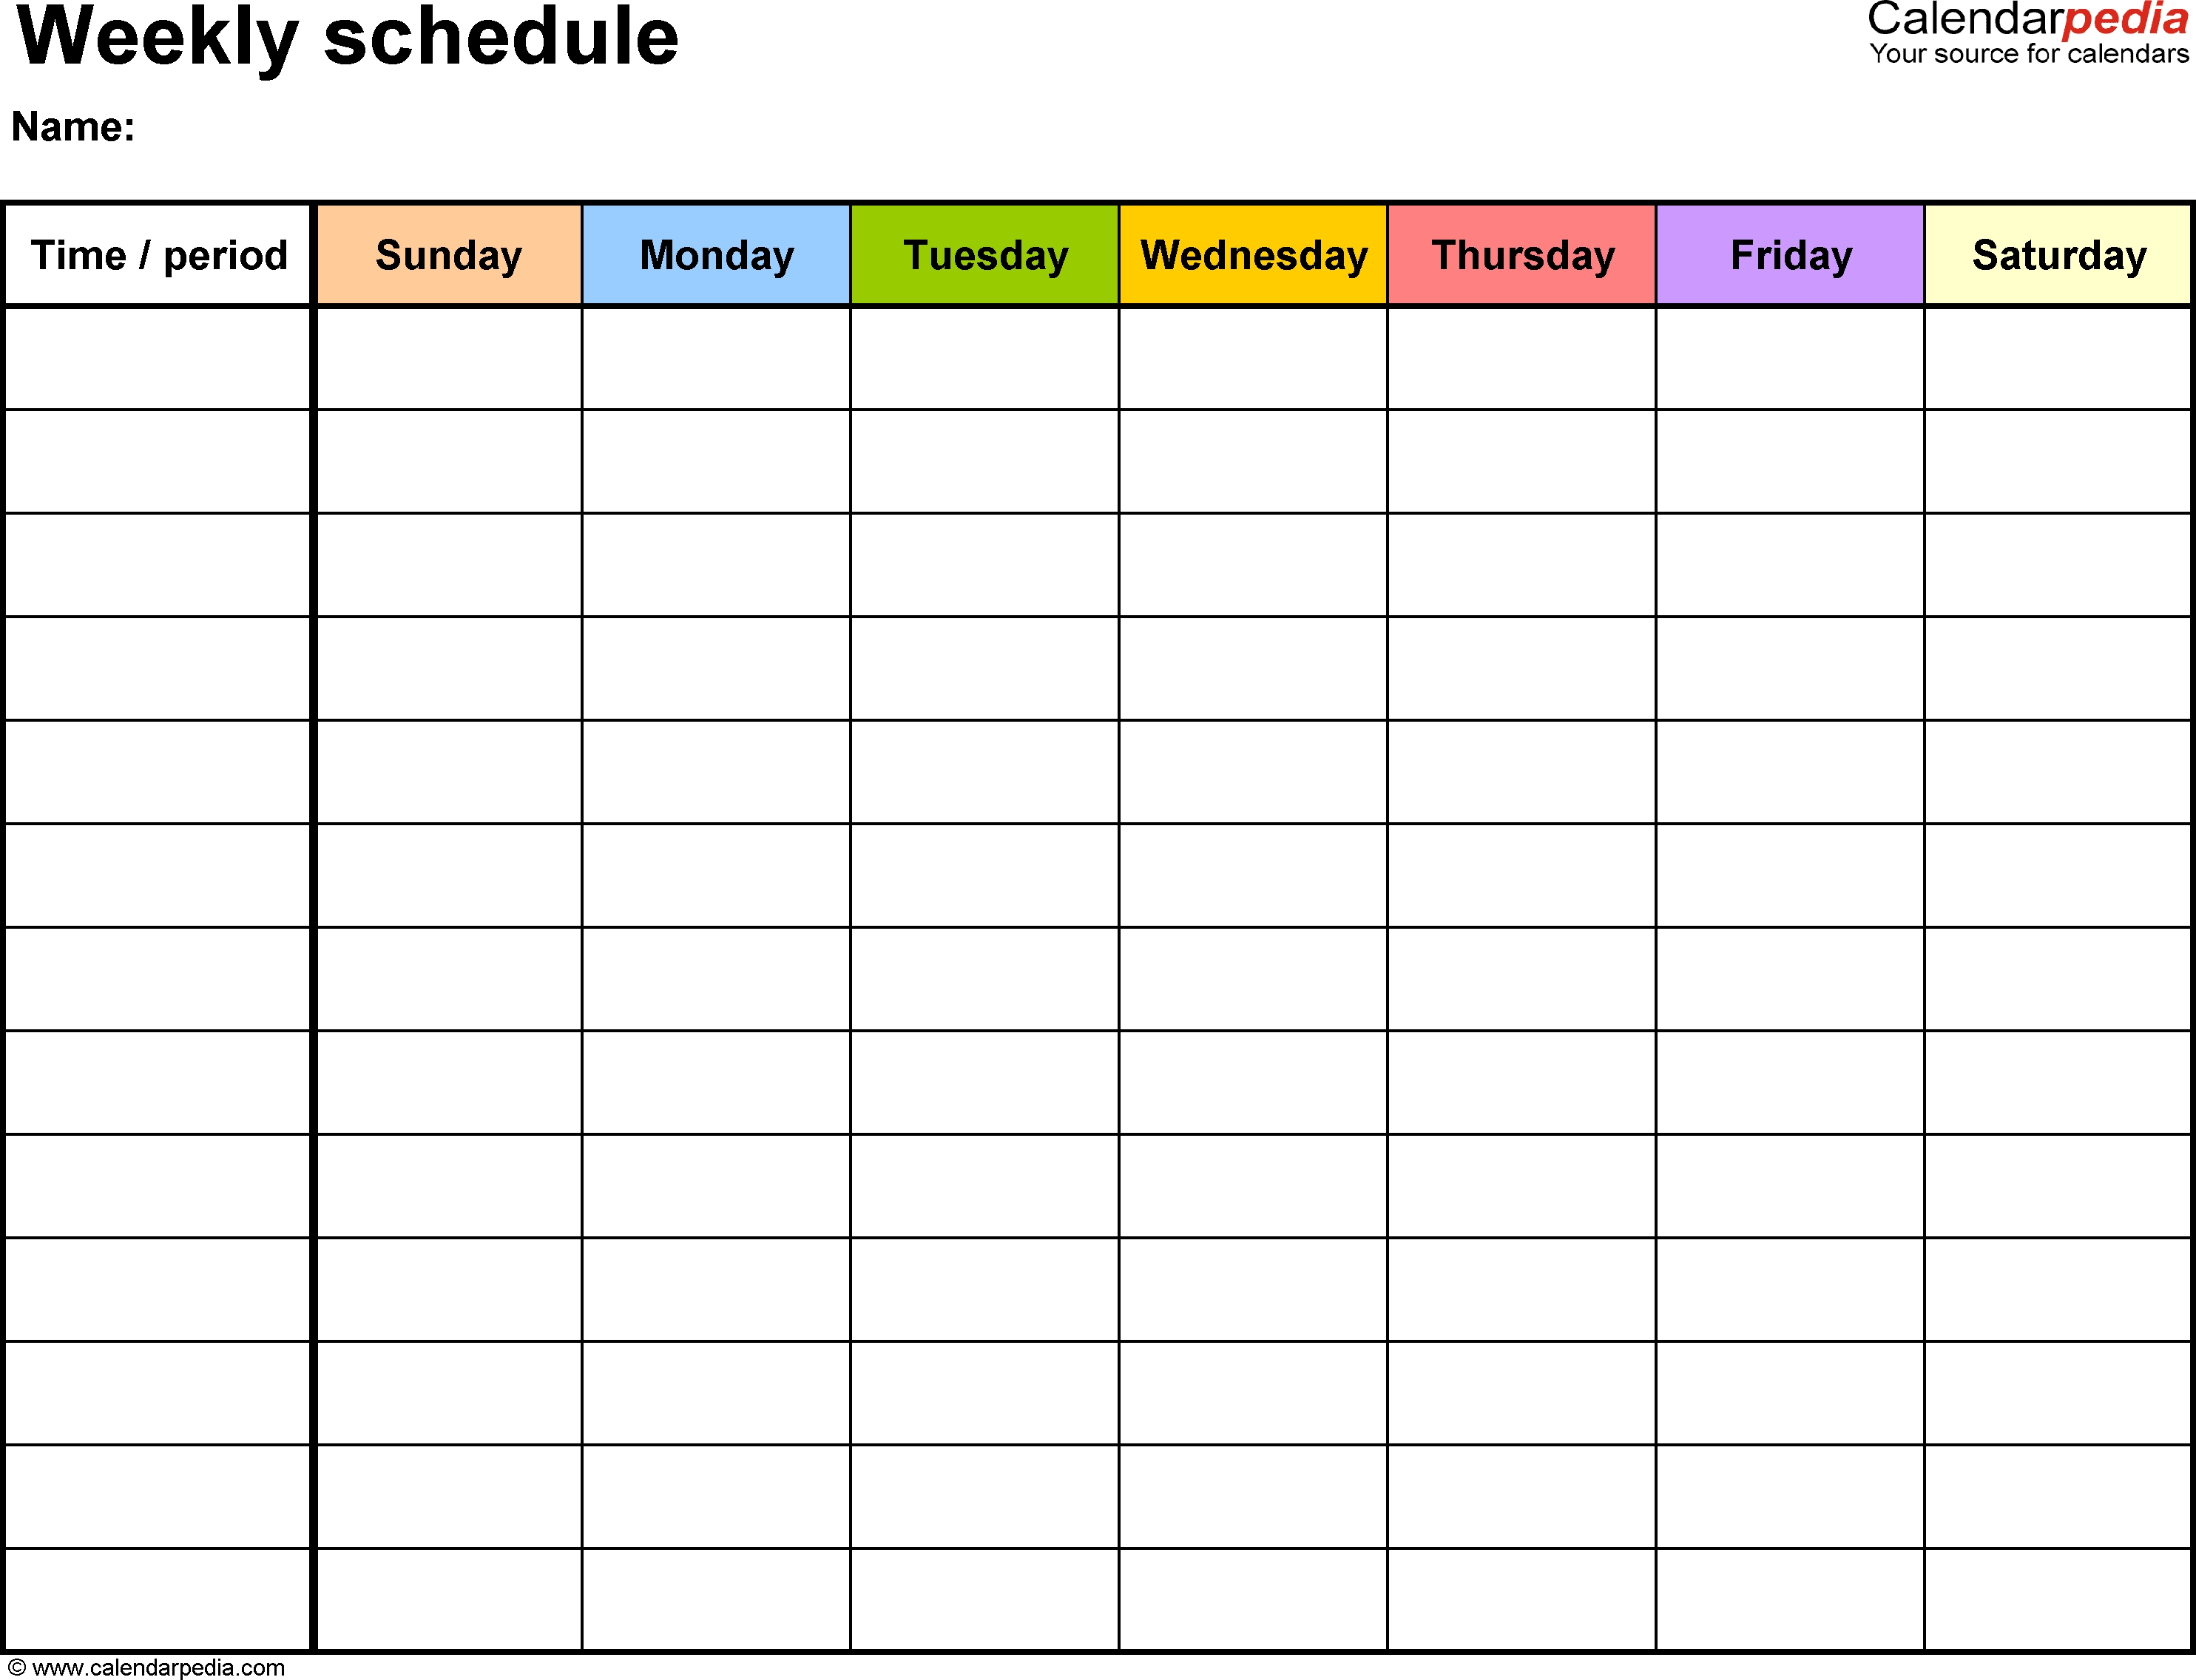 Free Weekly Schedule Templates For Word - 18 Templates  Calendar By Month Monday To Friday